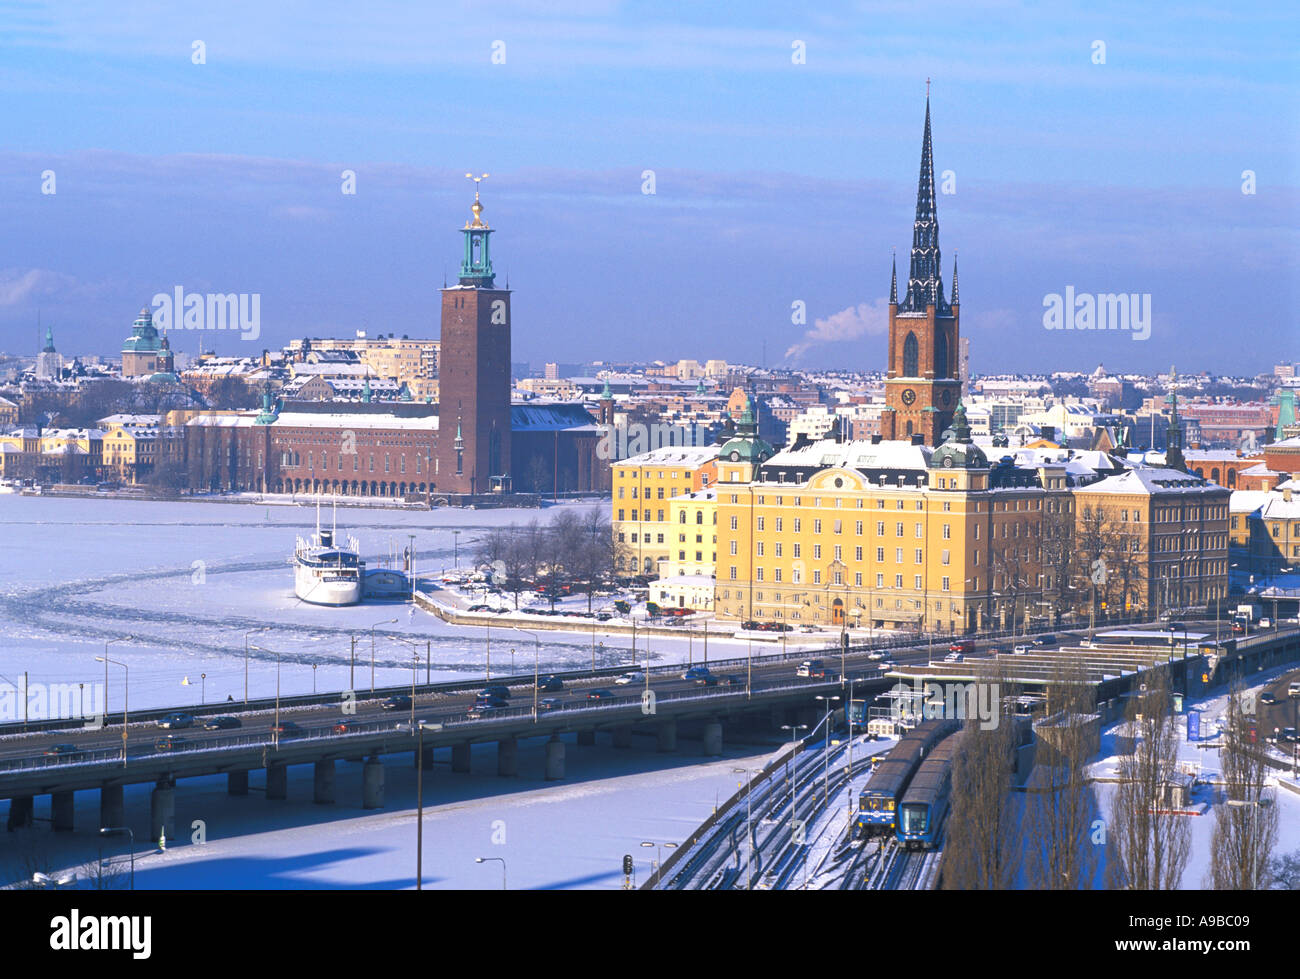 SWEDEN STOCKHOLM THE TOWN HALL AND RIDDARHOLMEN SEEN FROM SLUSSEN  Stock Photo